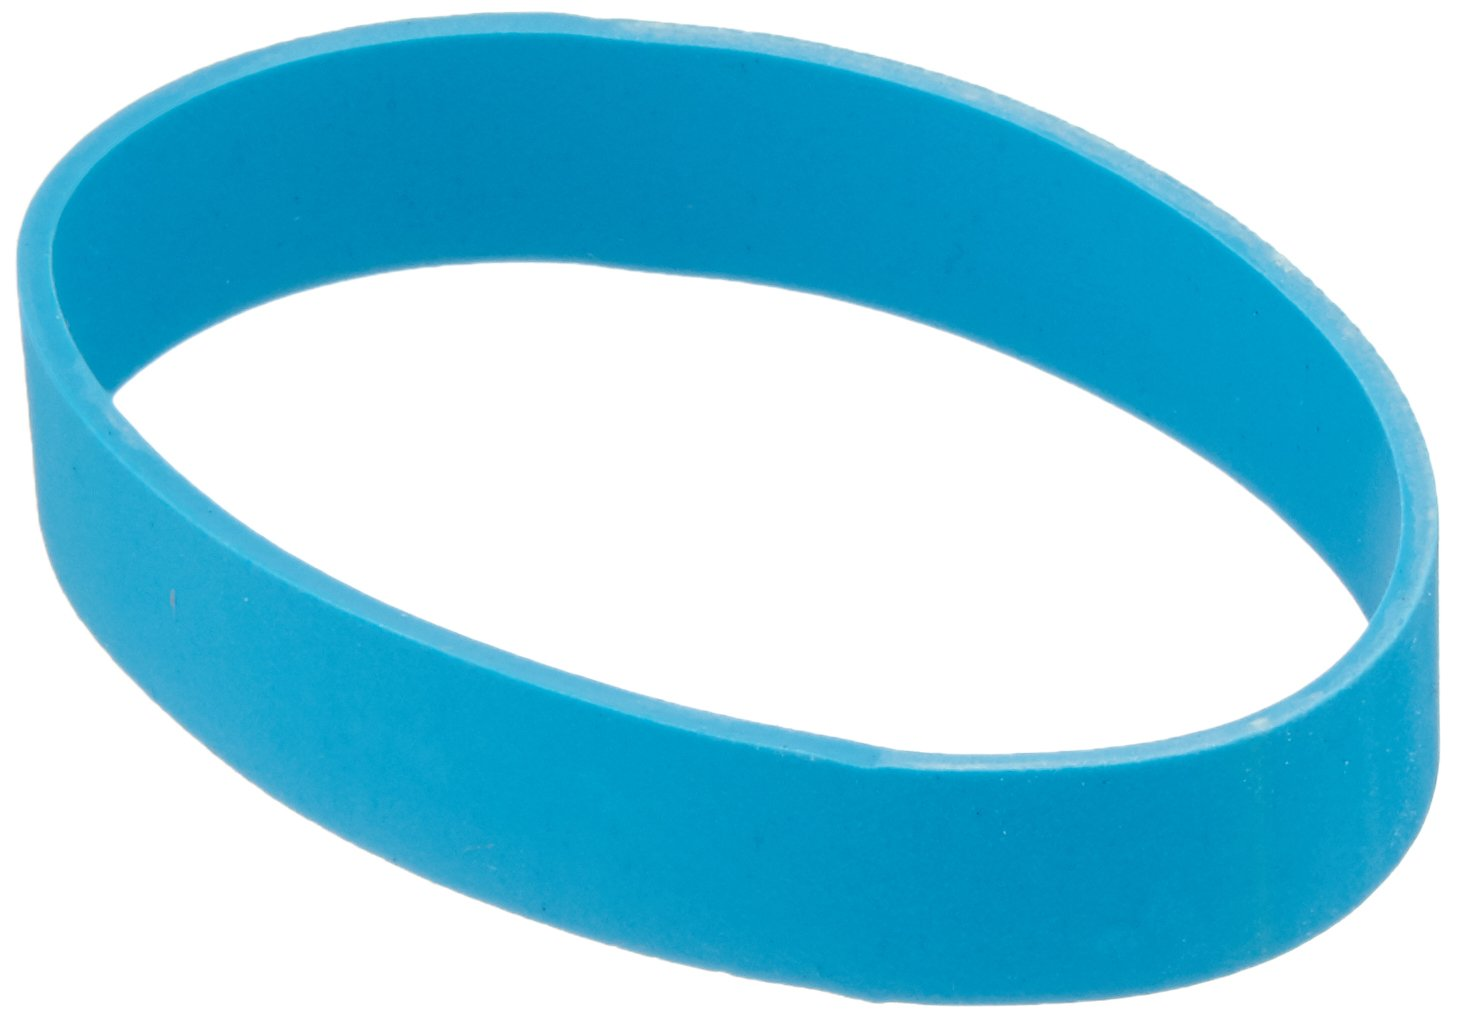 Sammons Preston Color-Coded Latex-Free Rubber Bands, Pack of 35, Heavy Blue Graded Elastic Bands, Ergonomic Hand Exercisers, Resistance Bands for Grip Strength, Hand Therapy, Occupational Therapy